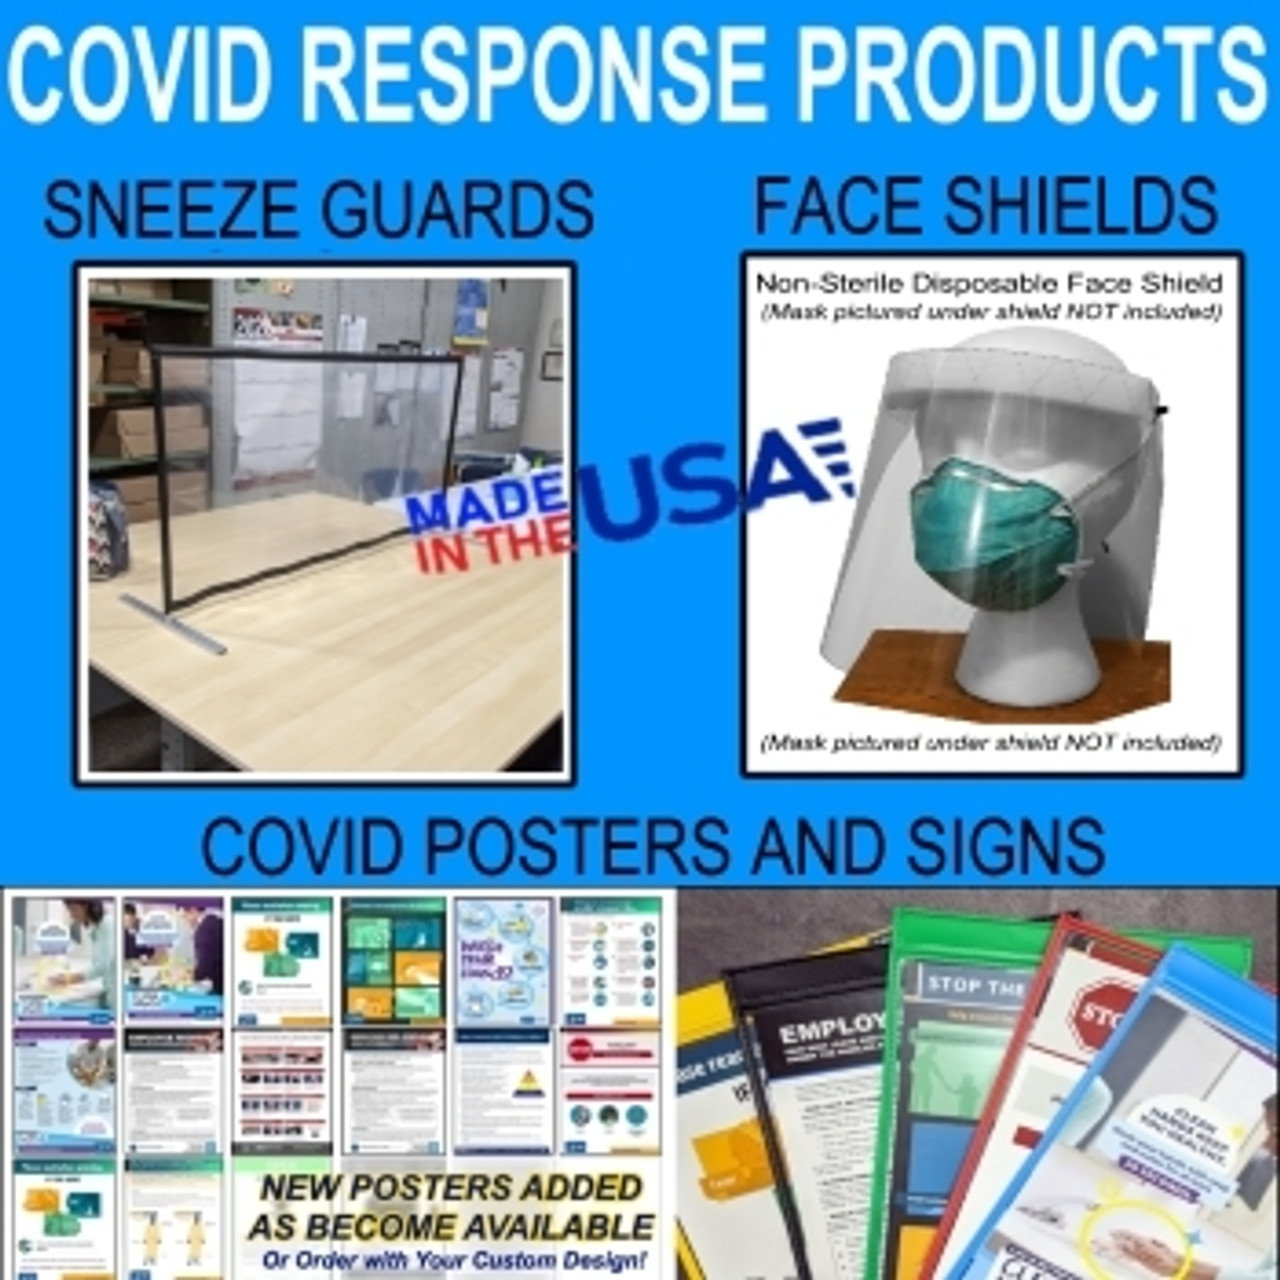 COVID RESPONSE PRODUCTS